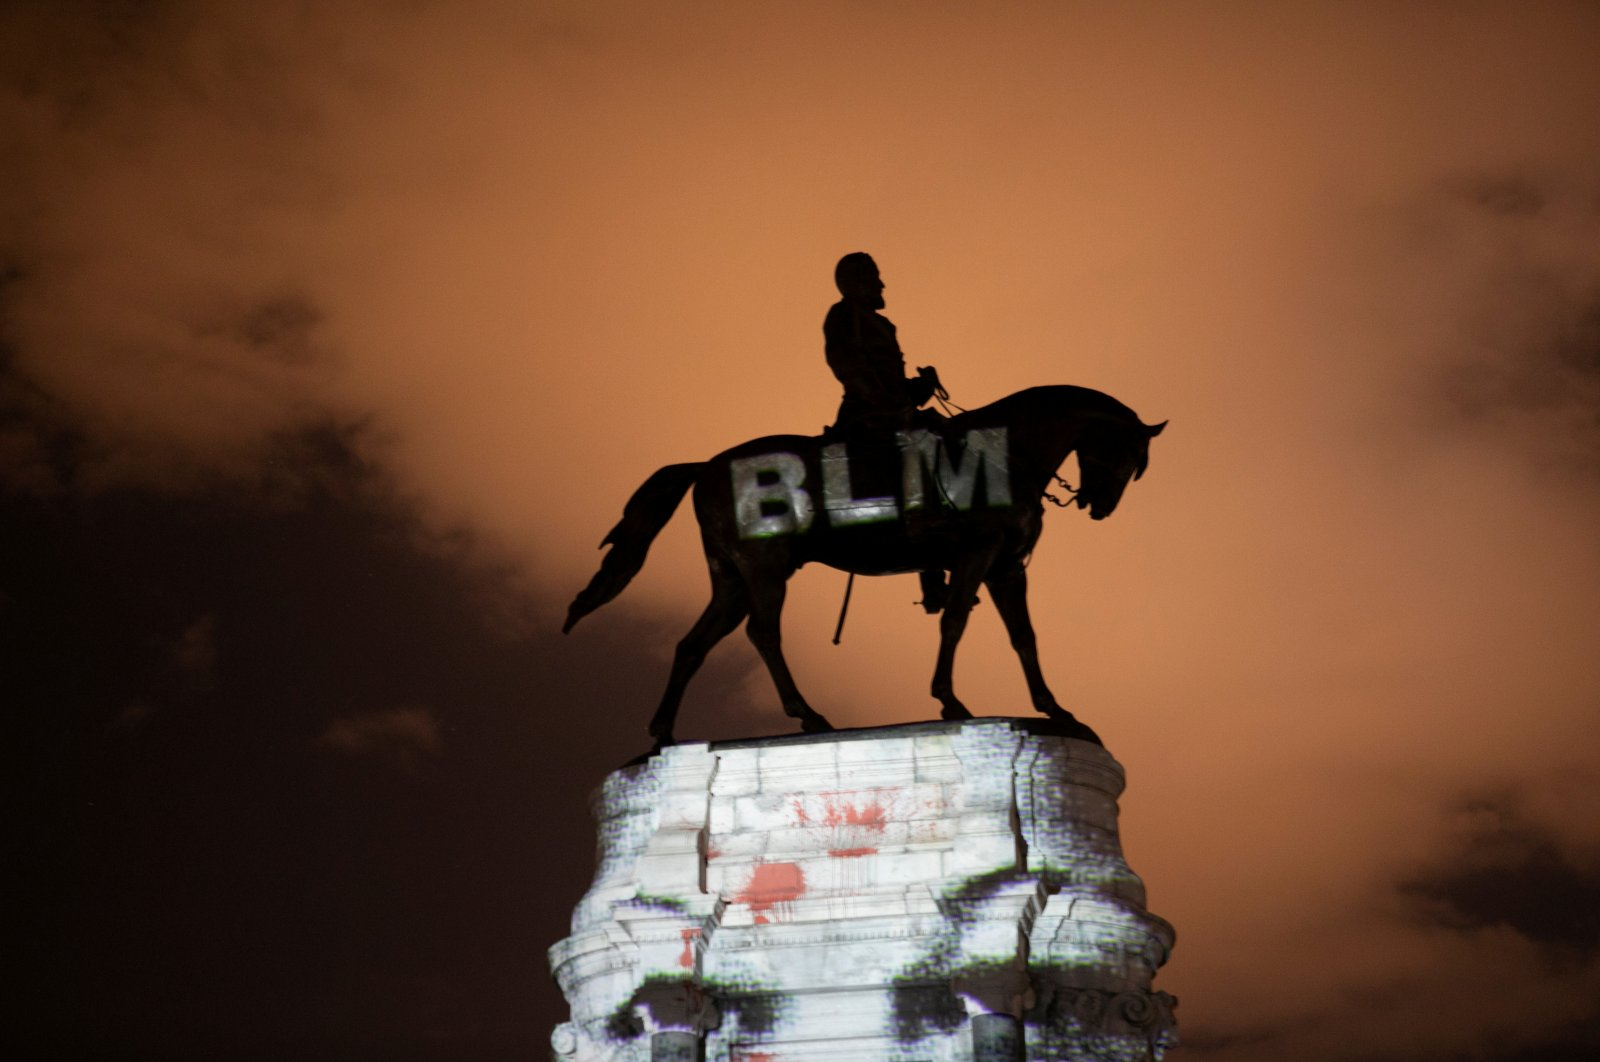 Artist Dustin Klein projects a Black Lives Matter image onto the statue of Confederate Gen. Robert E. Lee in Richmond, Virginia, U.S., June 18, 2020. (Reuters Photo)